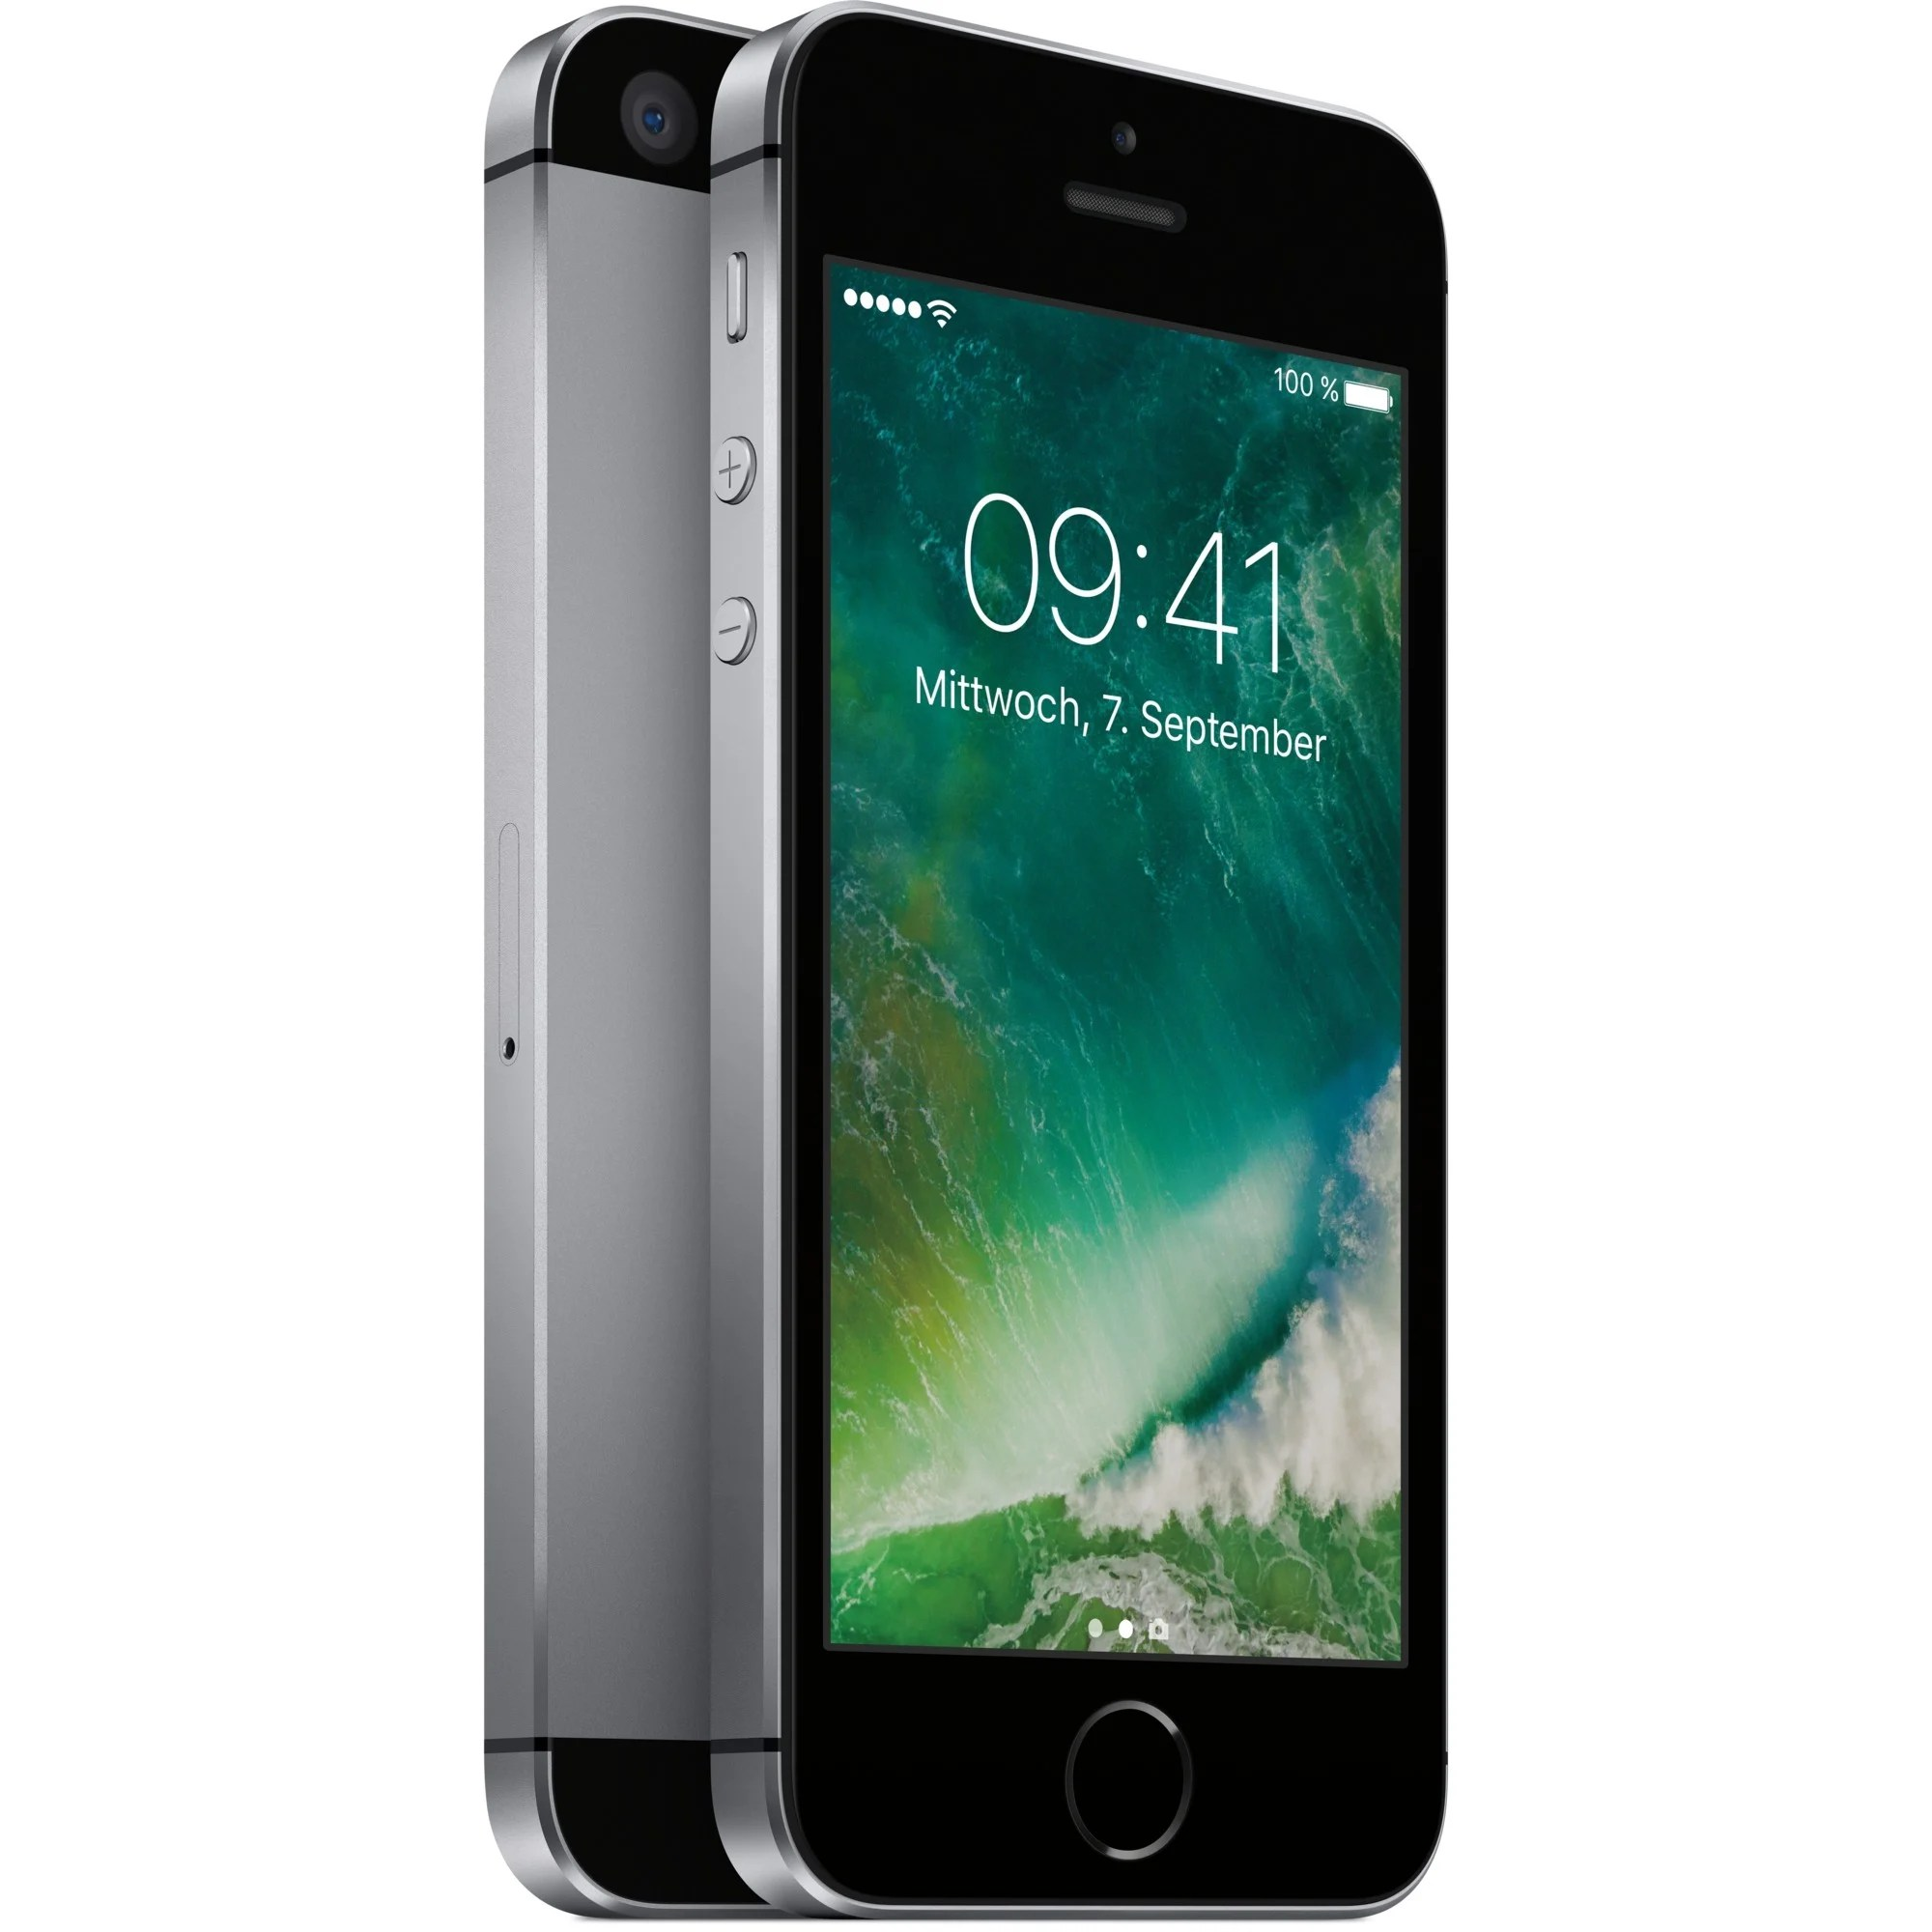 Iphone 5 Libre Precio Apple Iphone 5 16 Gb Precios Y Ofertas Apple